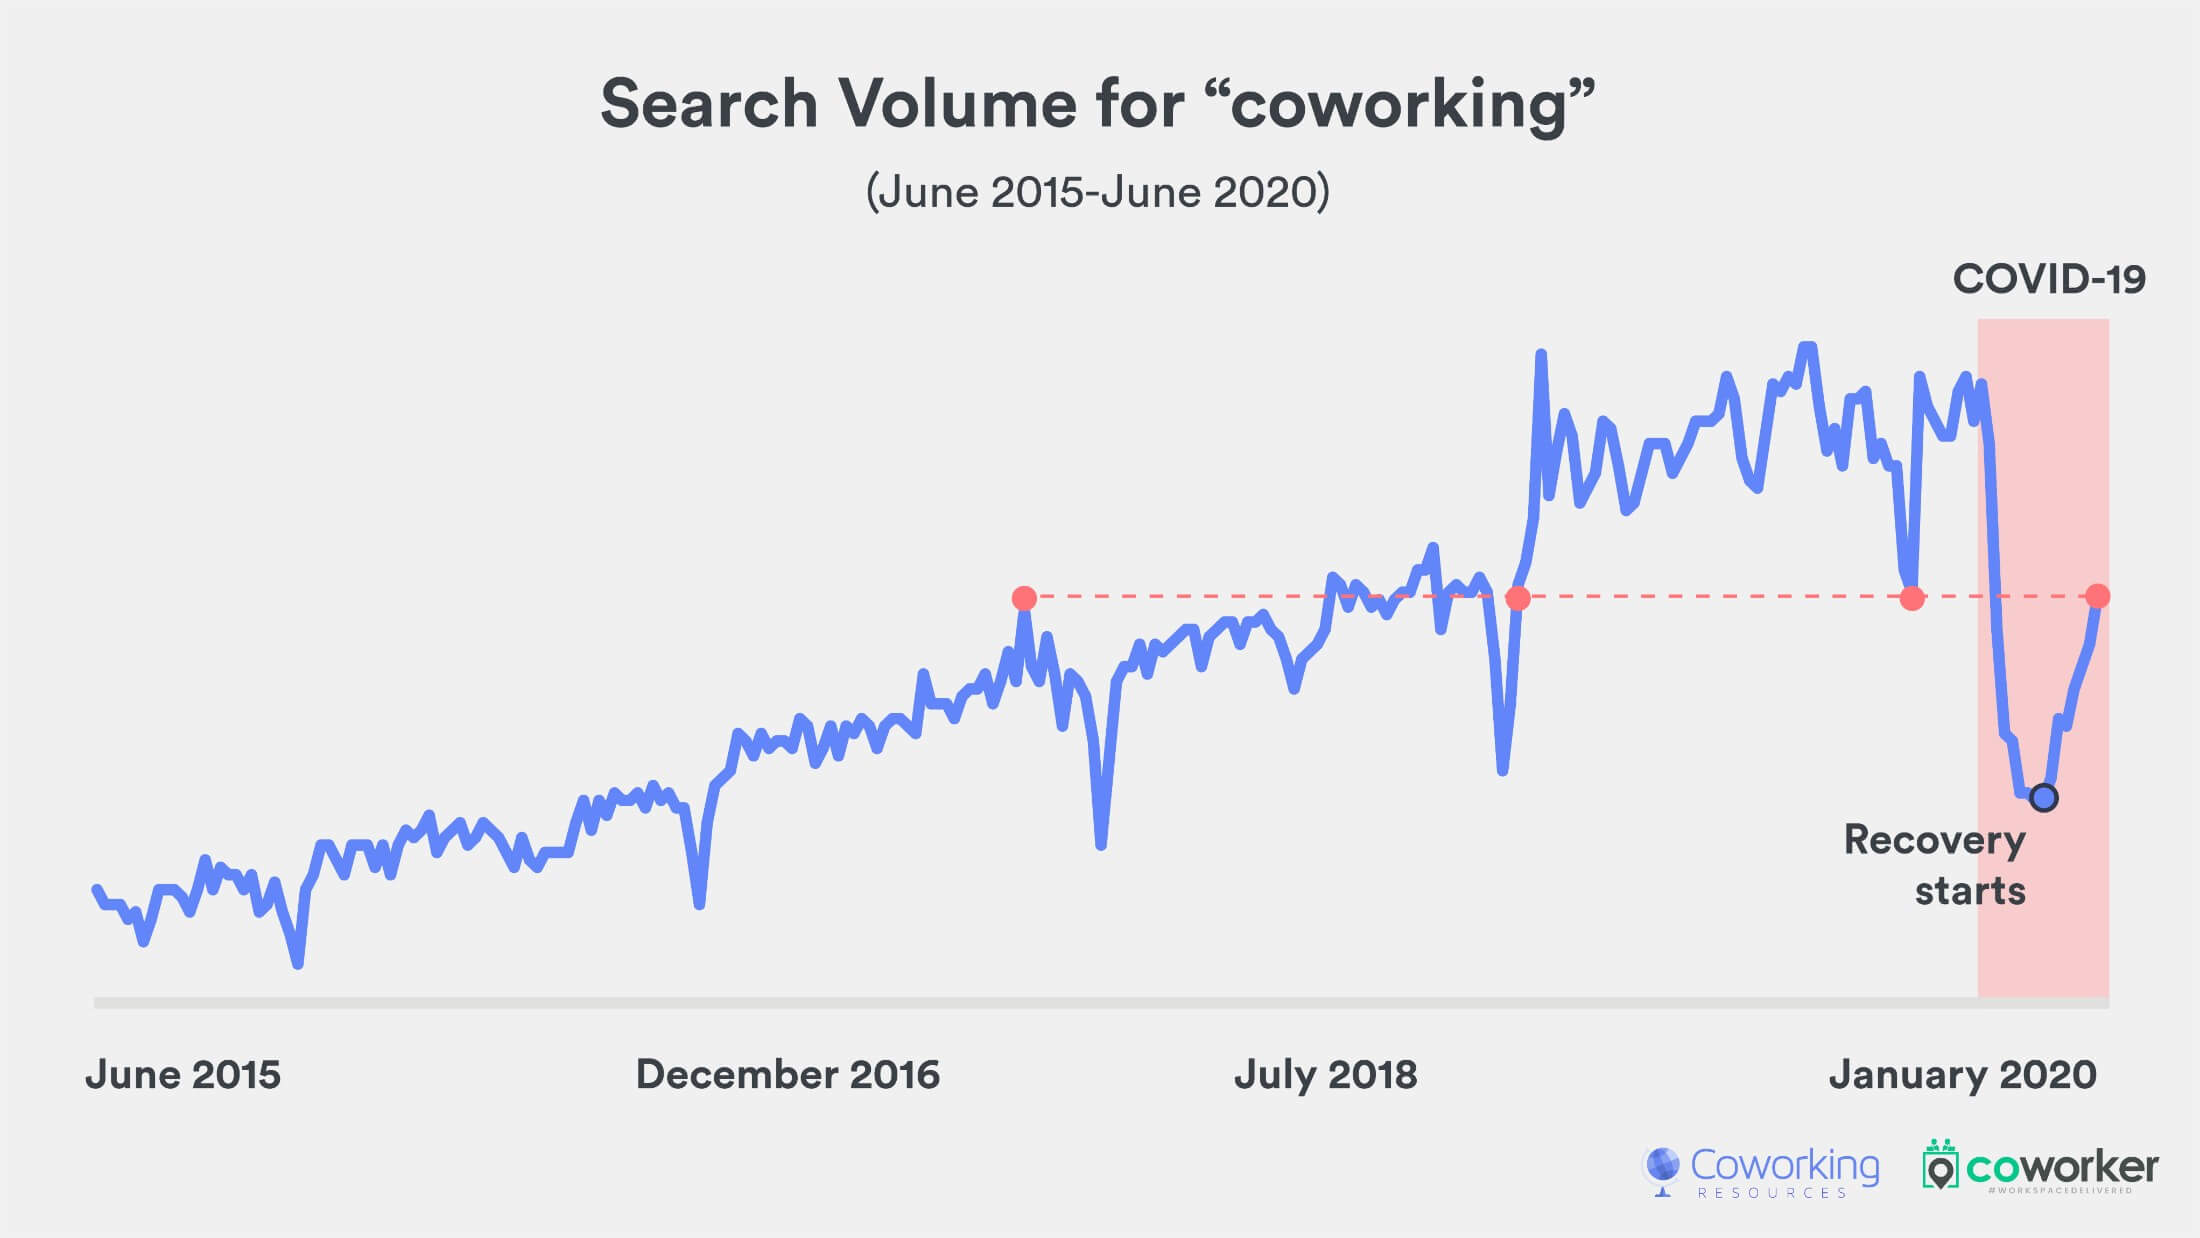 Historical demand for coworking and impact of Covid-19